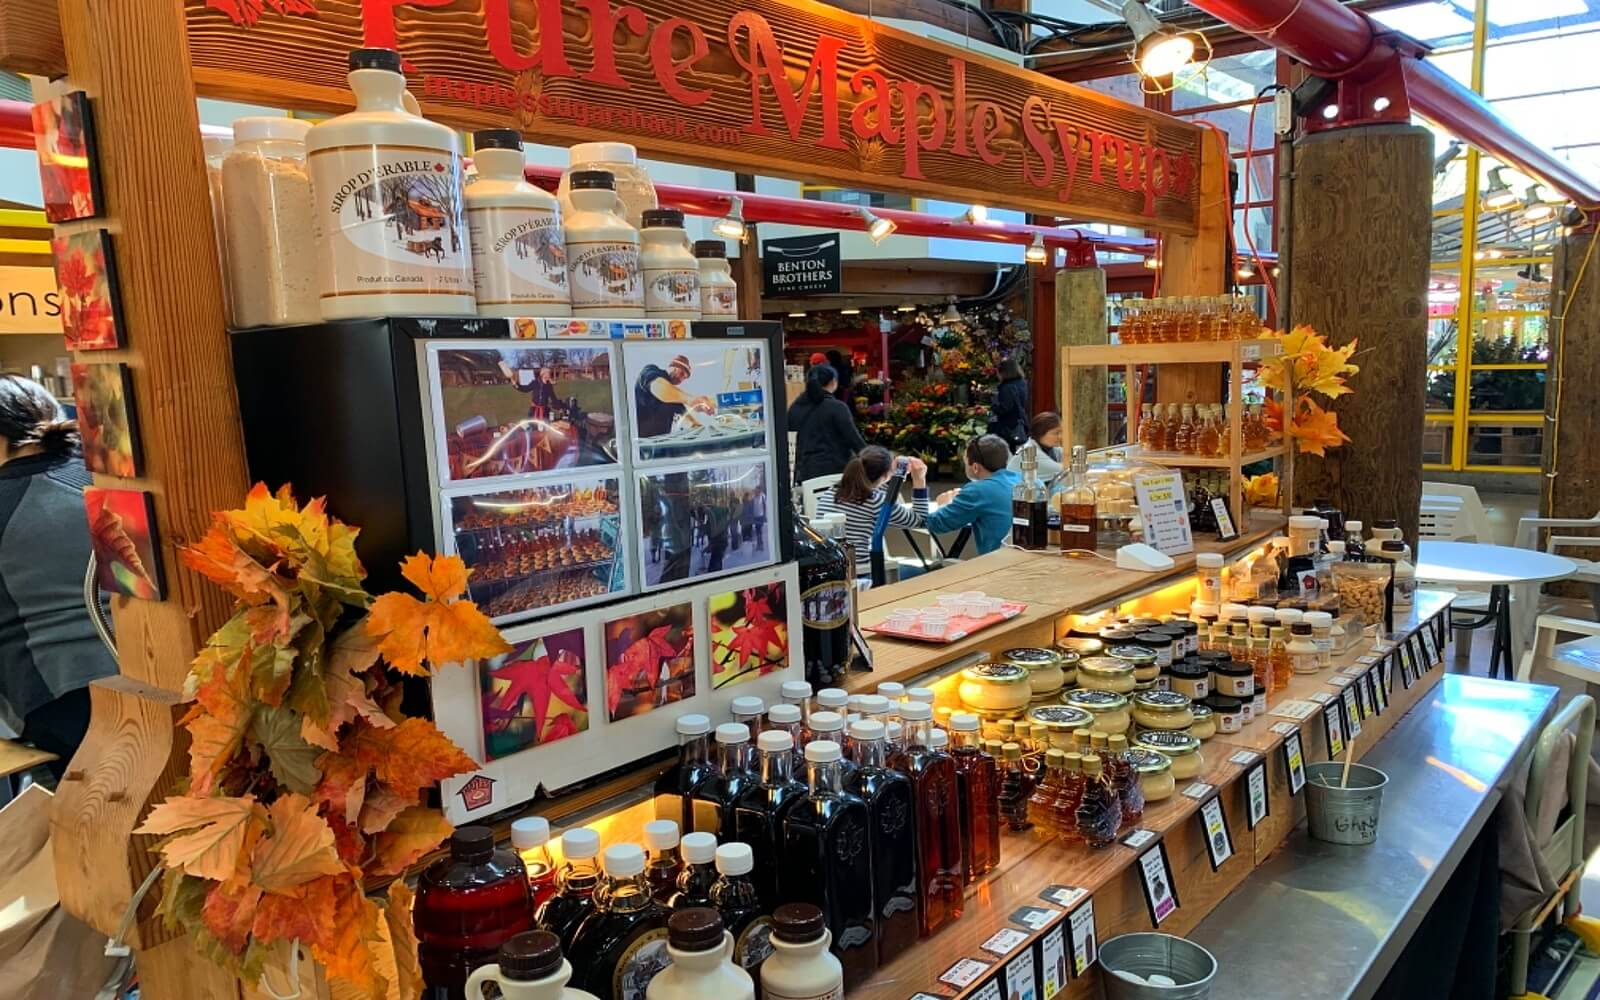 The Maple Syrup vendor at Granville Island Market